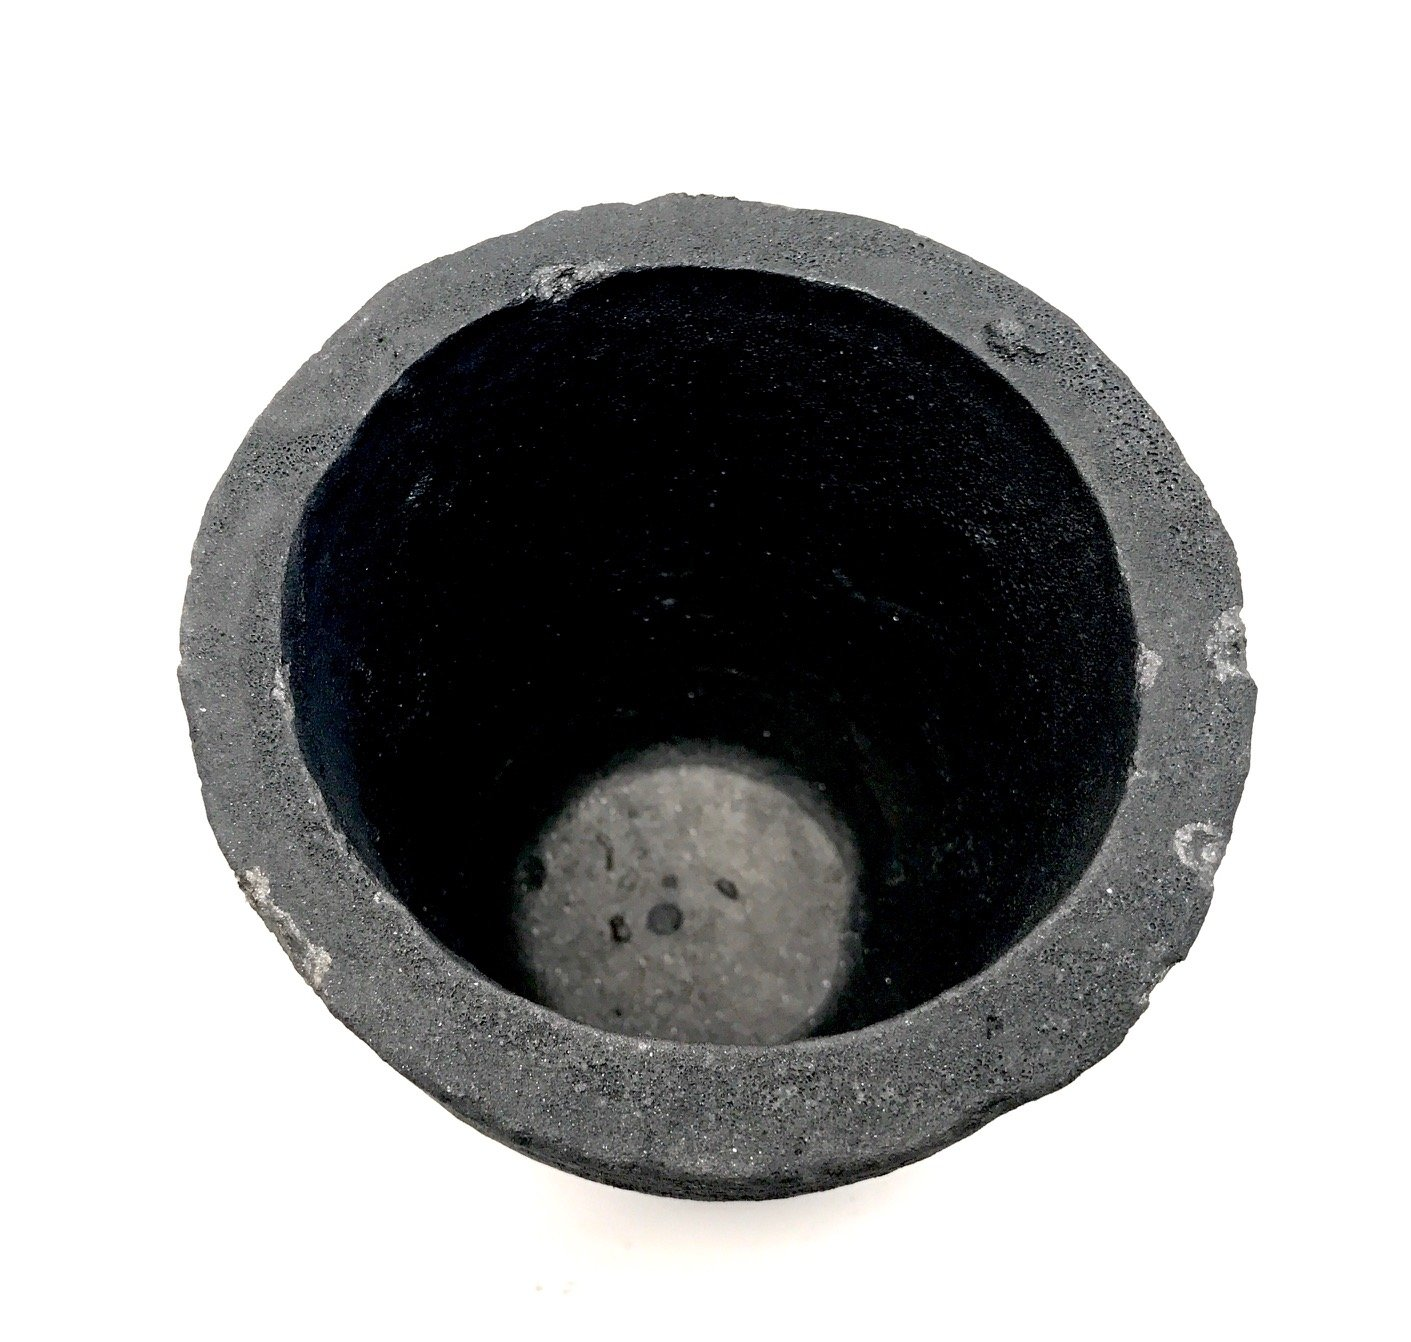 Cast Masters USA - 5 Kg Foundry Clay Graphite Crucible Furnace Torch Melting Casting Refining Gold Silver Copper Brass Aluminum CAST MASTERS ELITE 4336825882